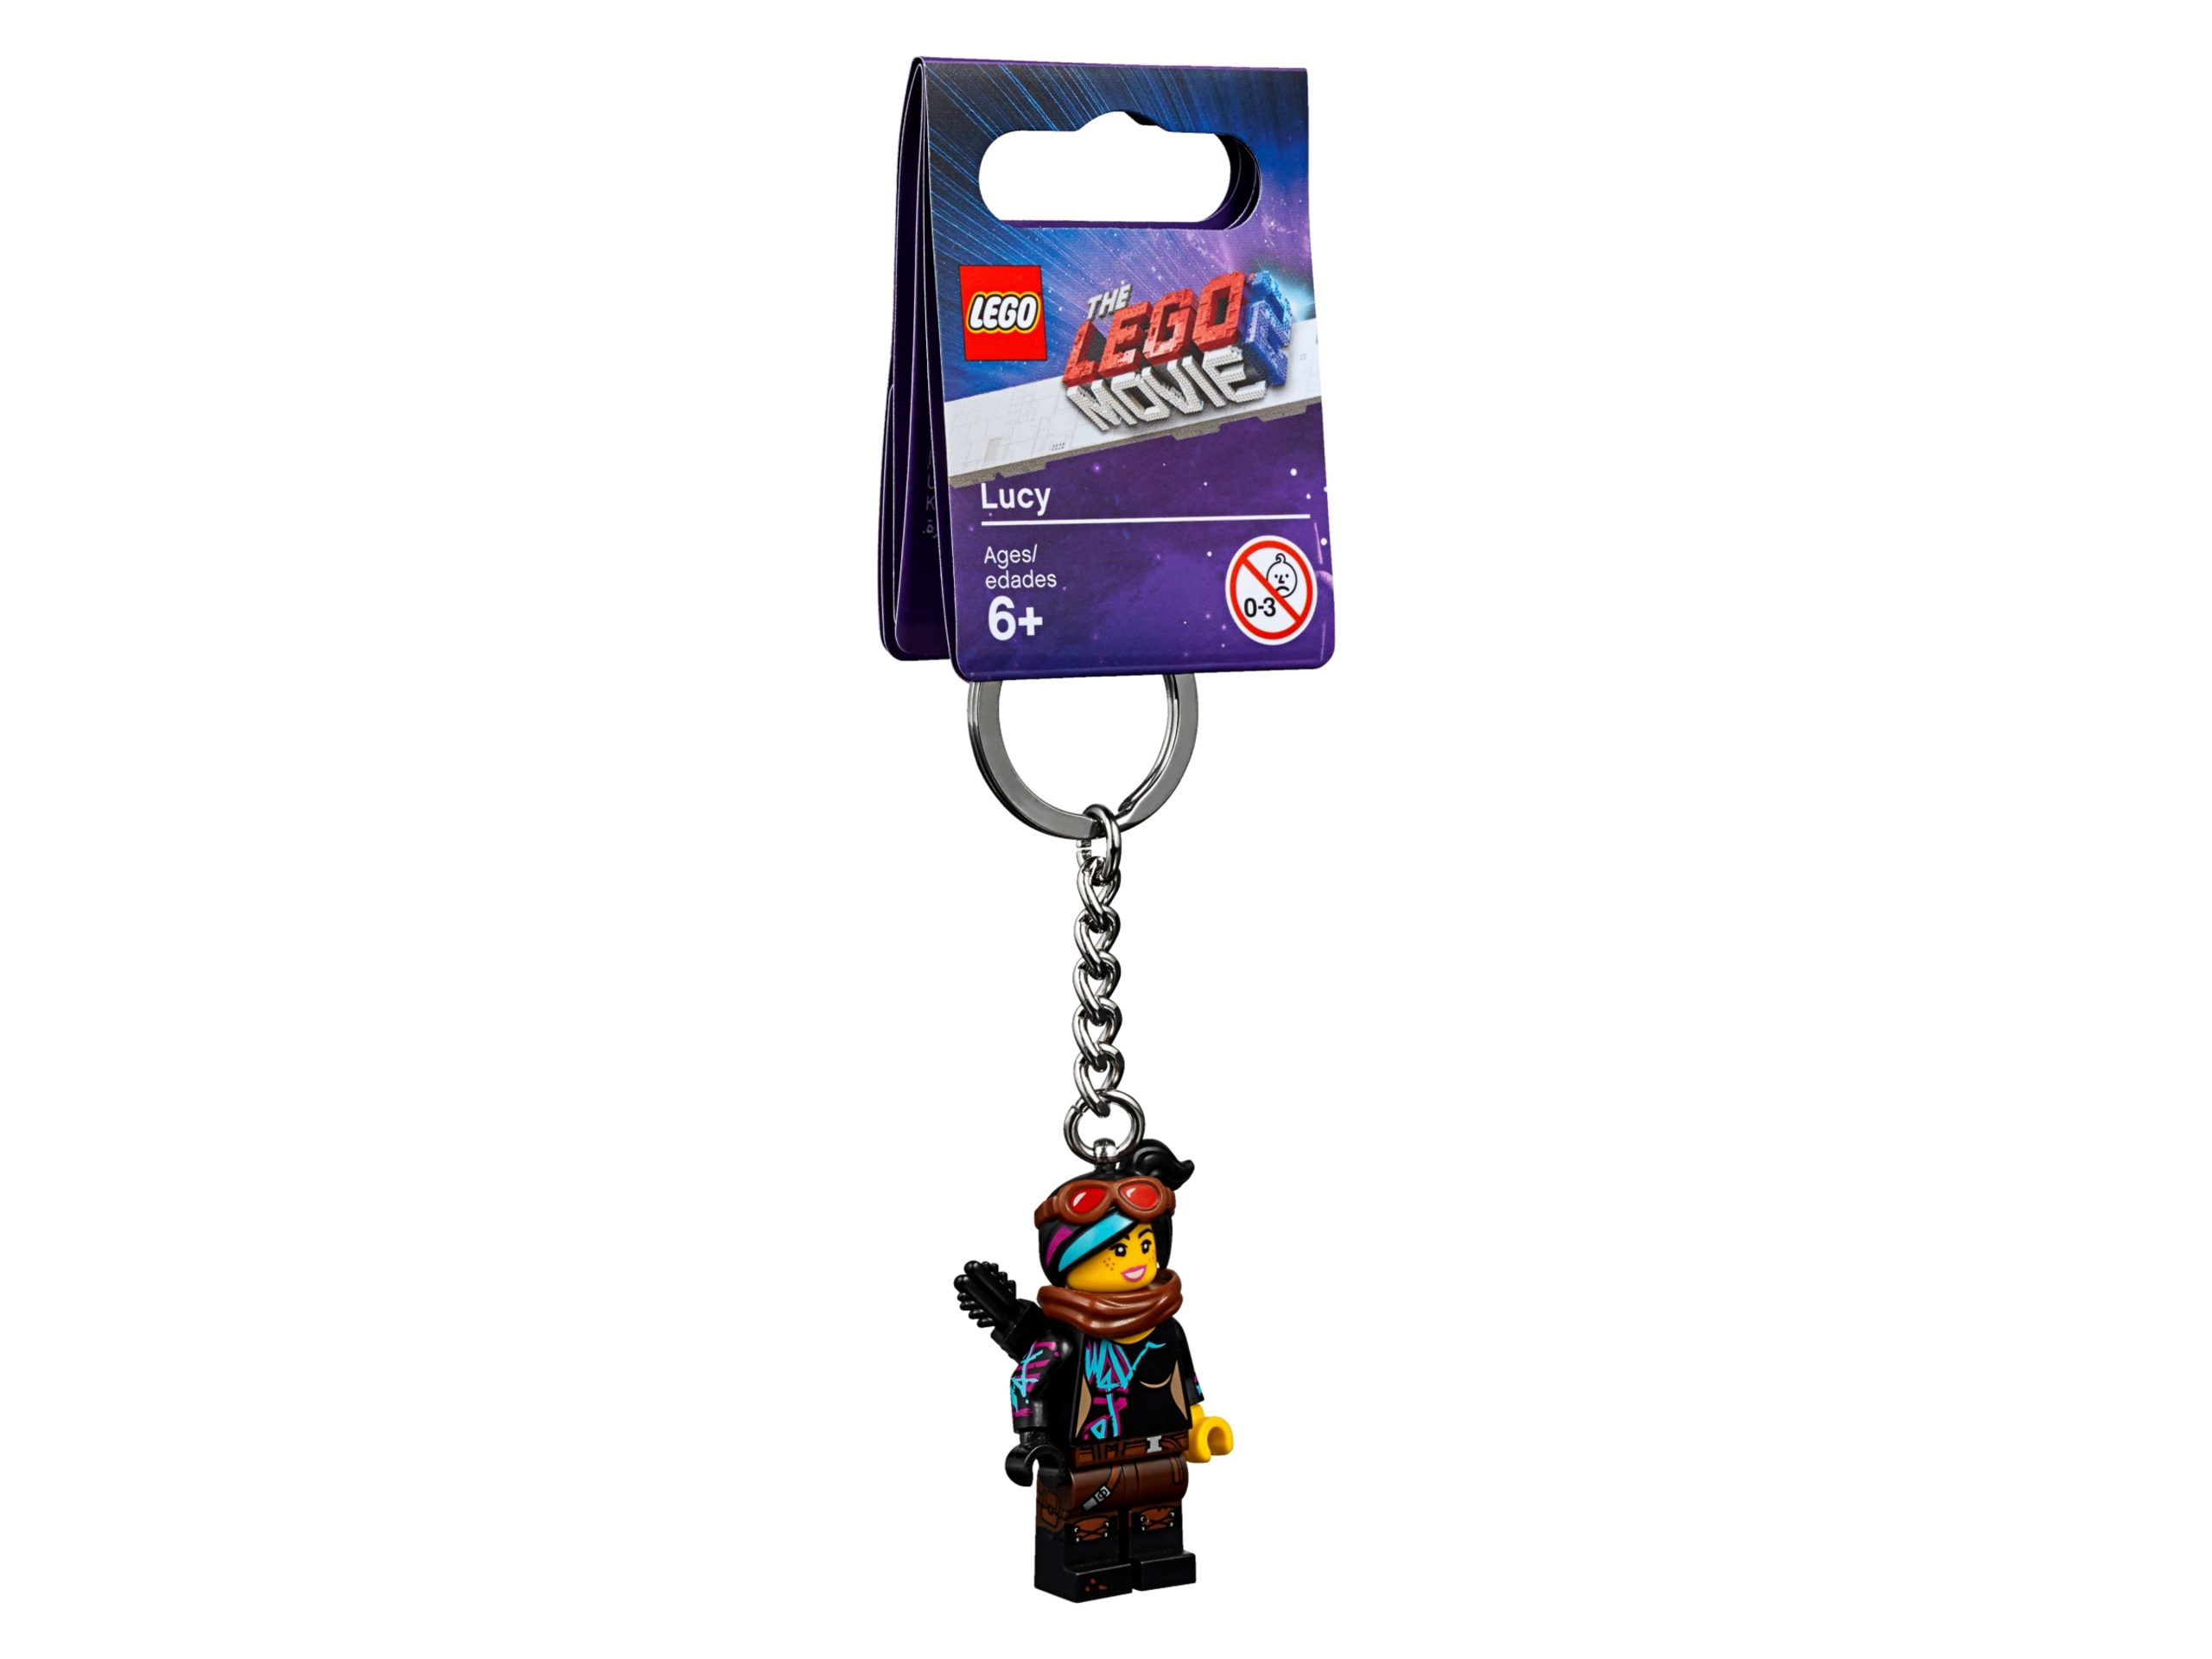 lego 853868 lucy key chain scaled